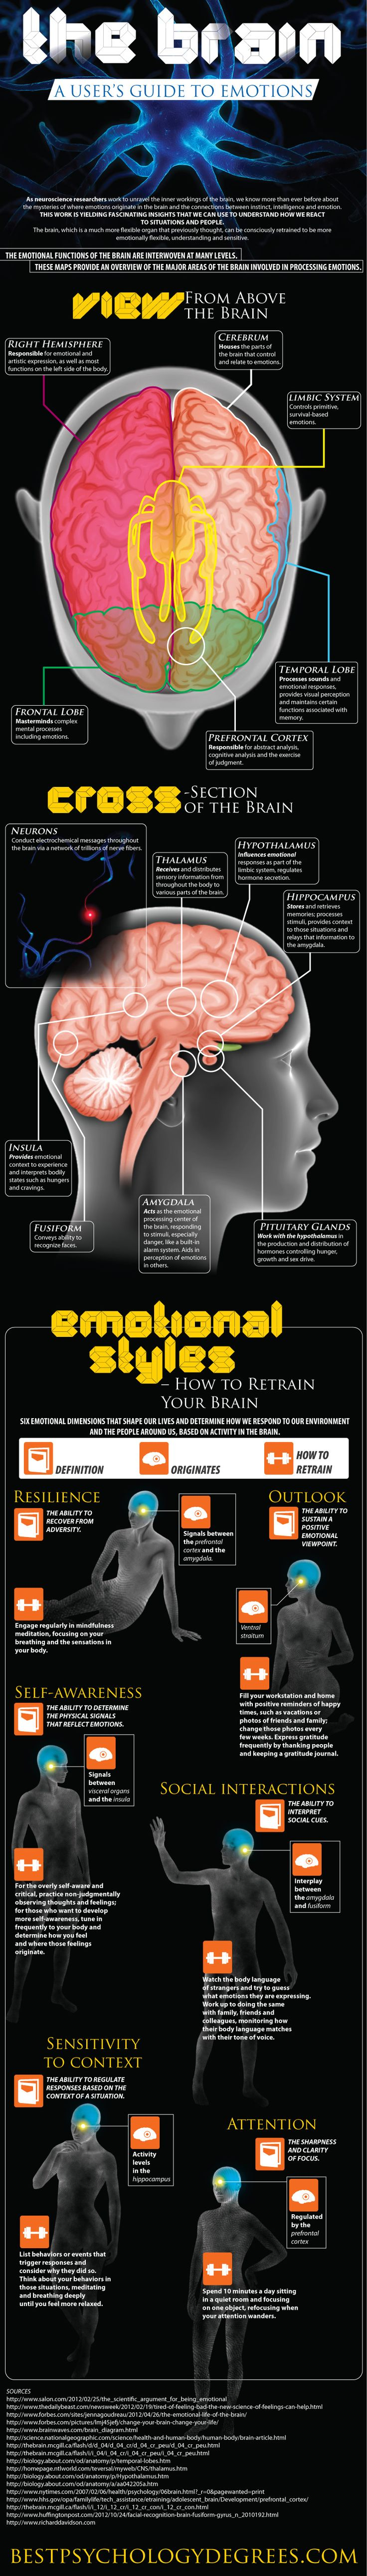 brain infographic  http://medicalinfographics.wordpress.com/2013/03/14/brain-infographic/